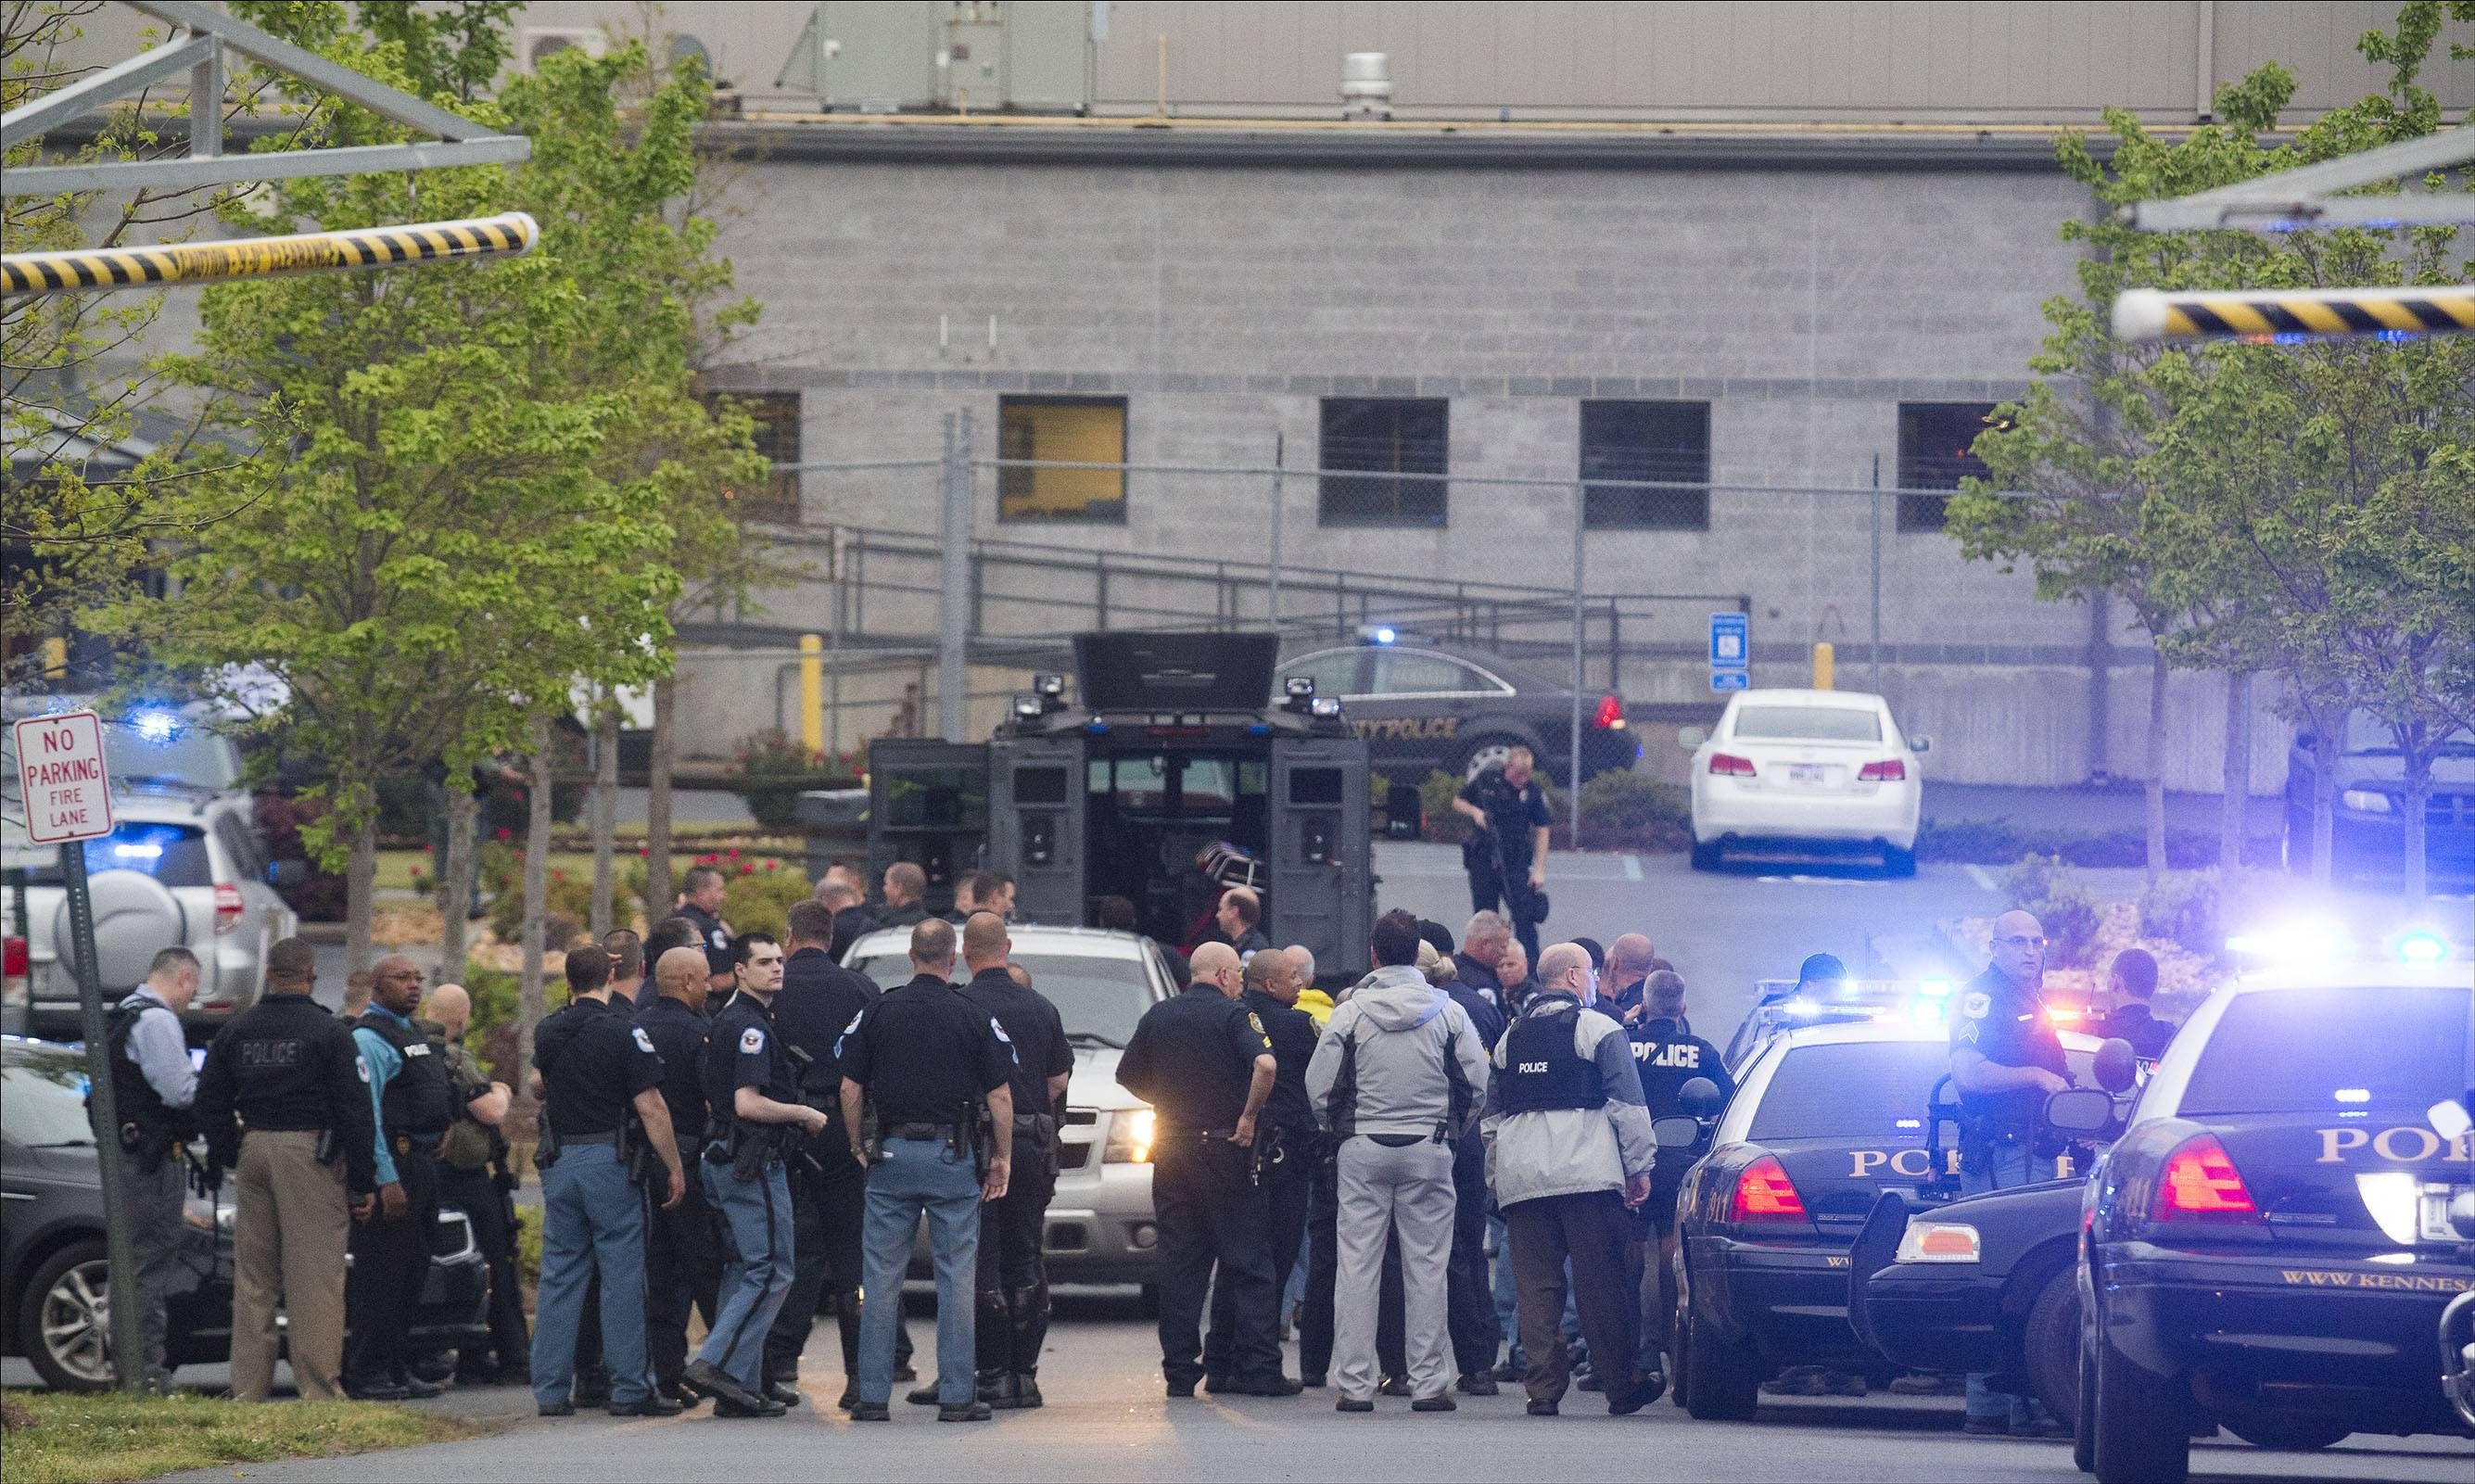 Police officers from Cobb County, Marietta and Kennesaw departments stage near the entrance of the Federal Express Ground building in Kennesaw, Ga., Tuesday after a man opened fire inside the building before turning the gun on himself.